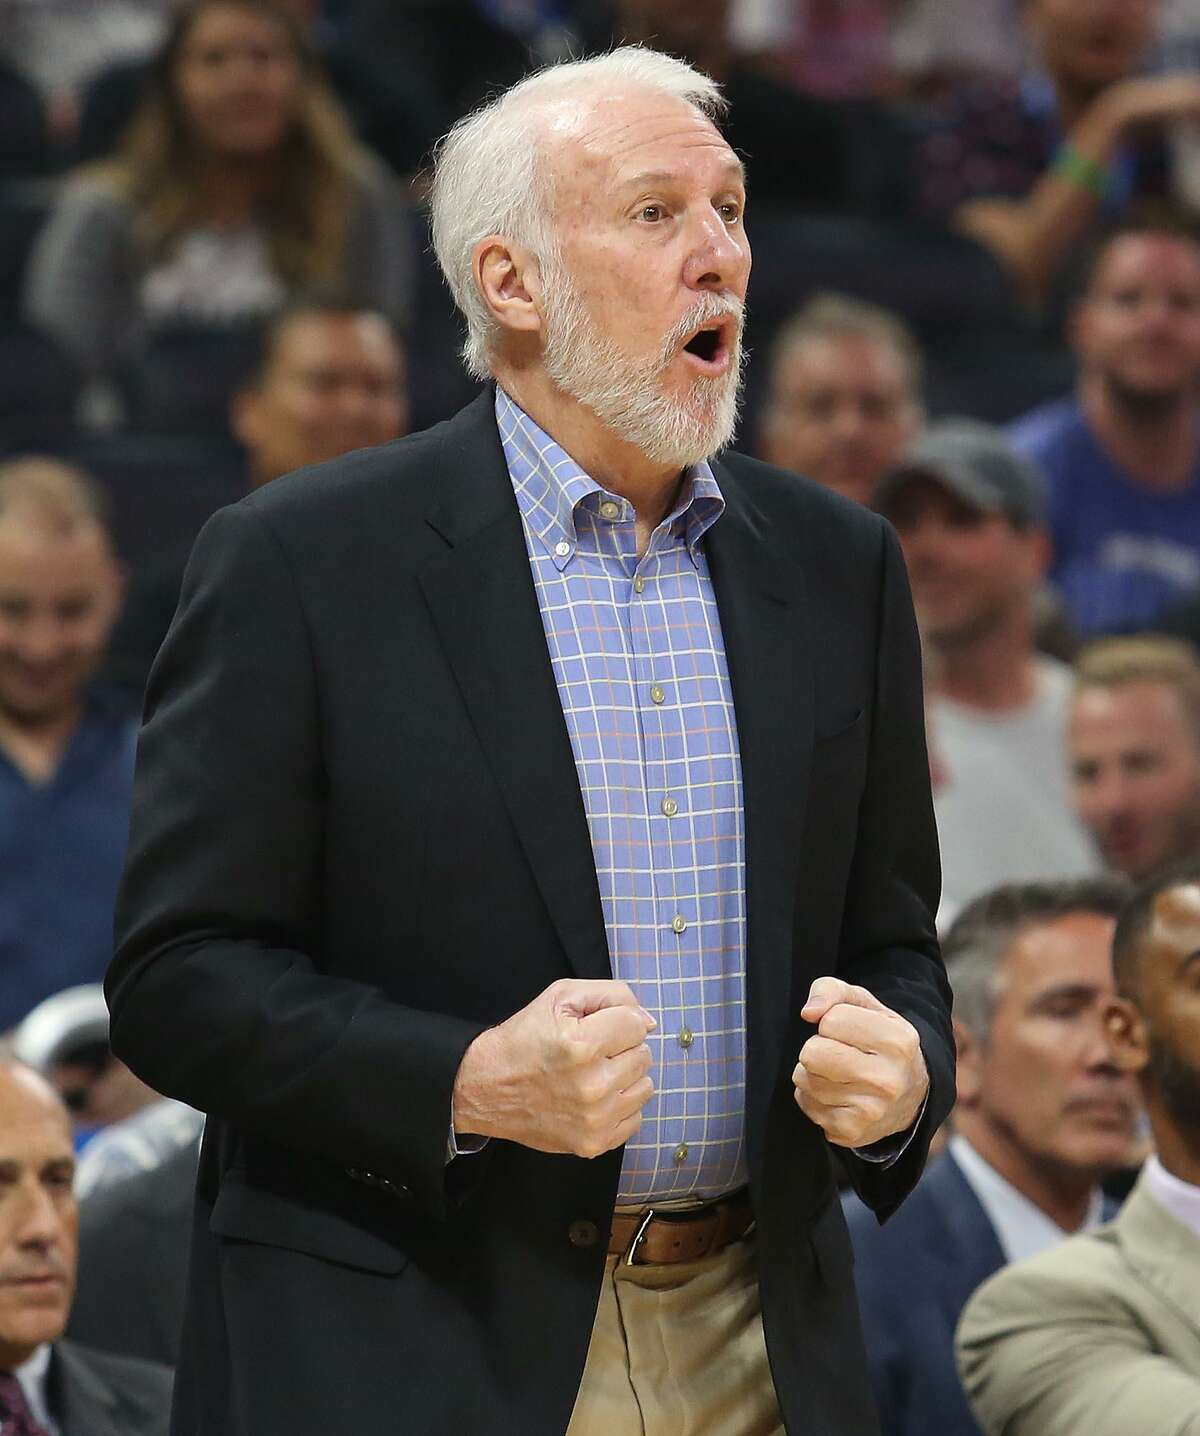 Spurs head coach Gregg Popovich says he has seen several teams in the NBA emulating the Warriors' style of play.